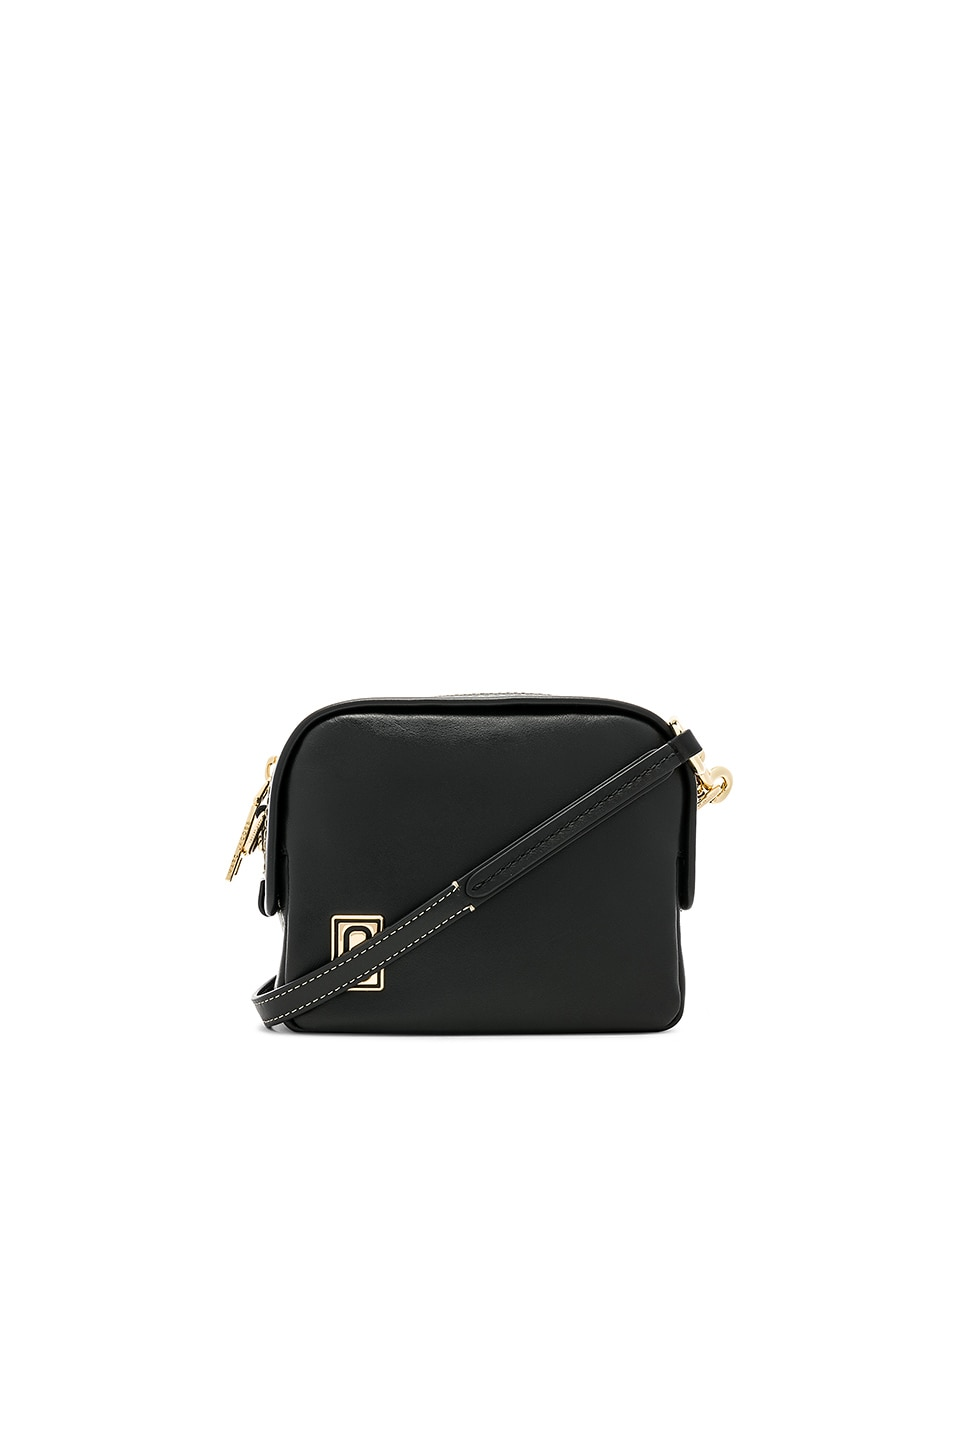 Marc Jacobs The Mini Squeeze in Black